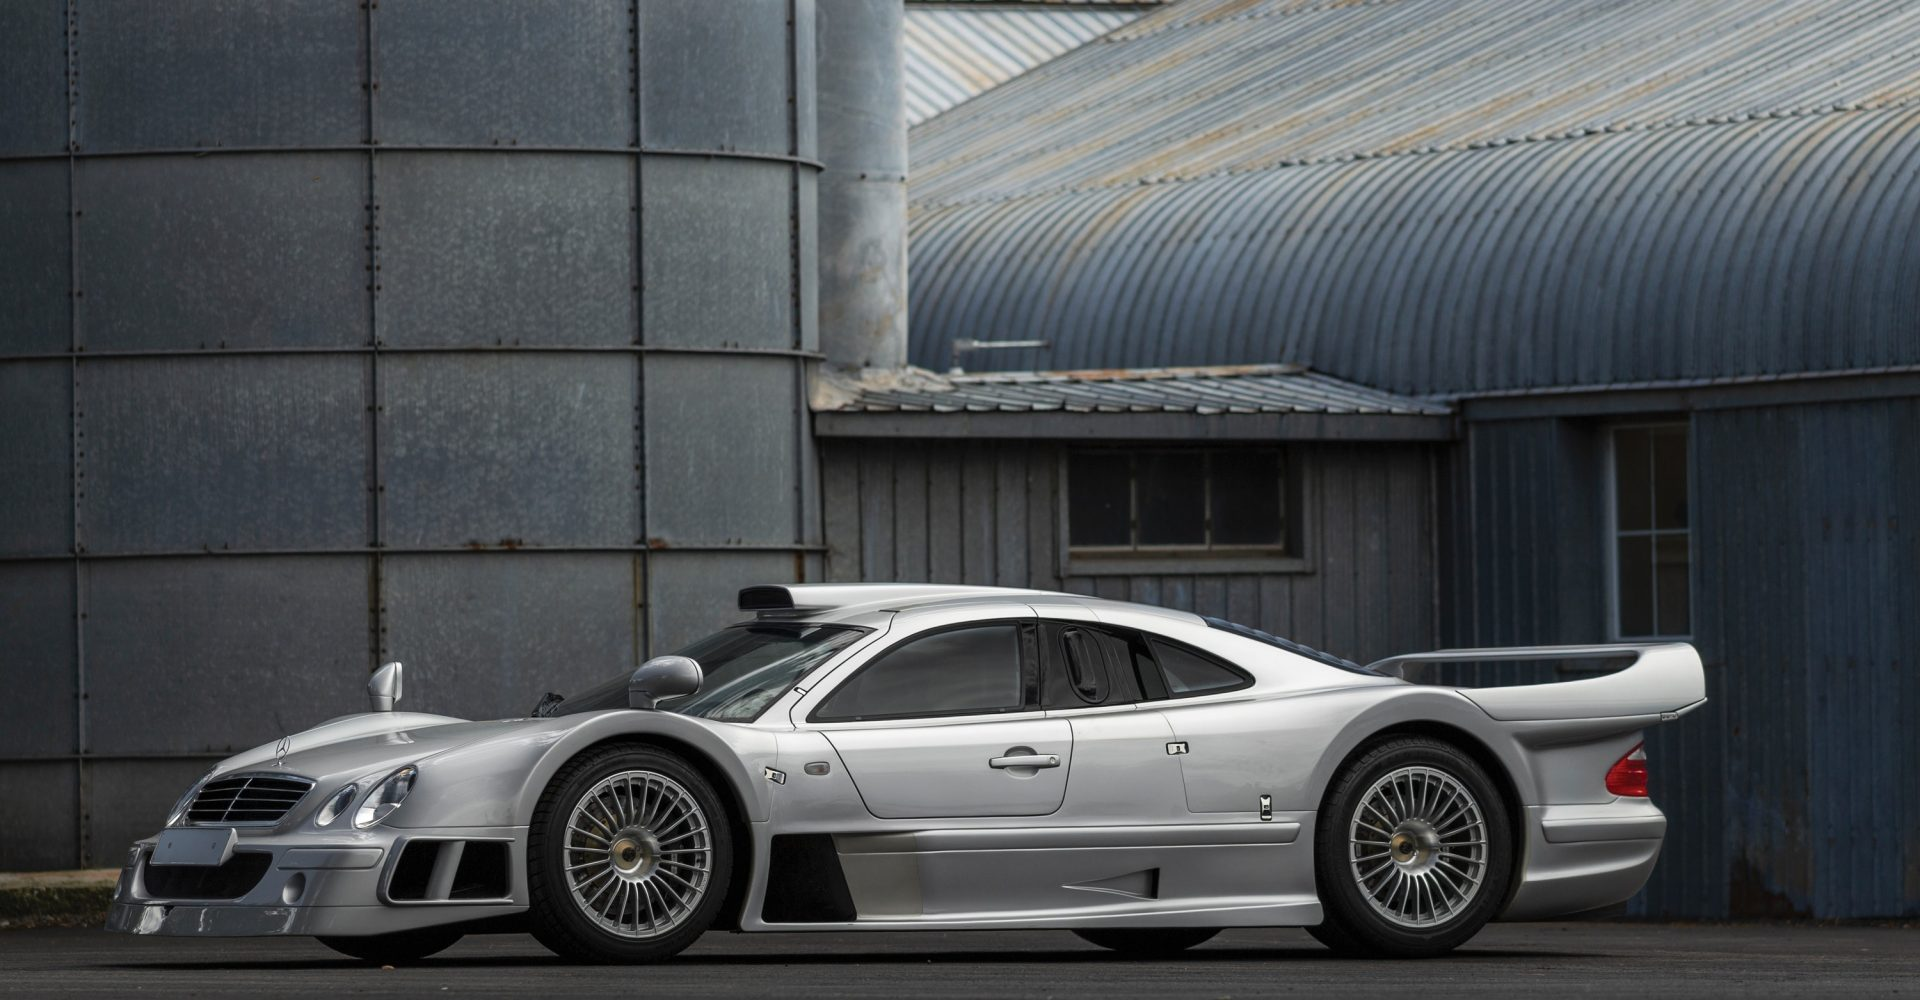 This Mercedes-Benz could sell for £4m